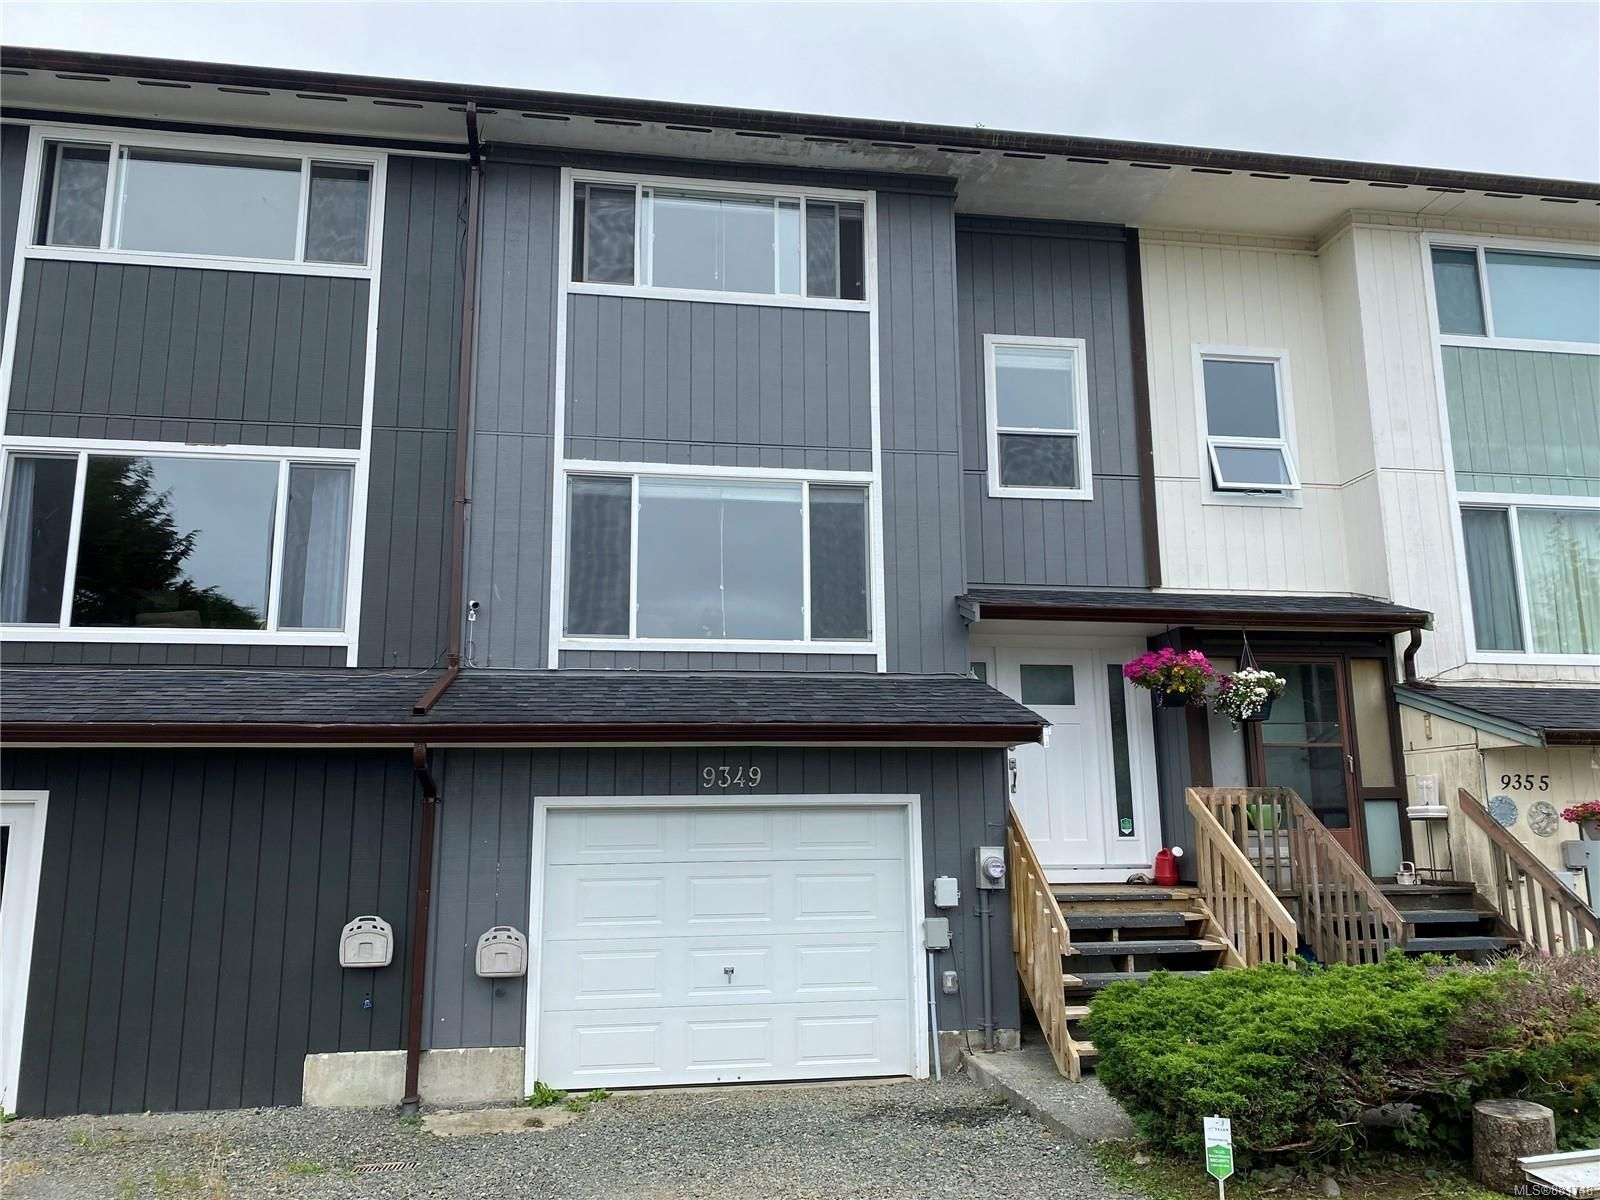 Main Photo: 9349 Carnarvon Rd in : NI Port Hardy Row/Townhouse for sale (North Island)  : MLS®# 881748